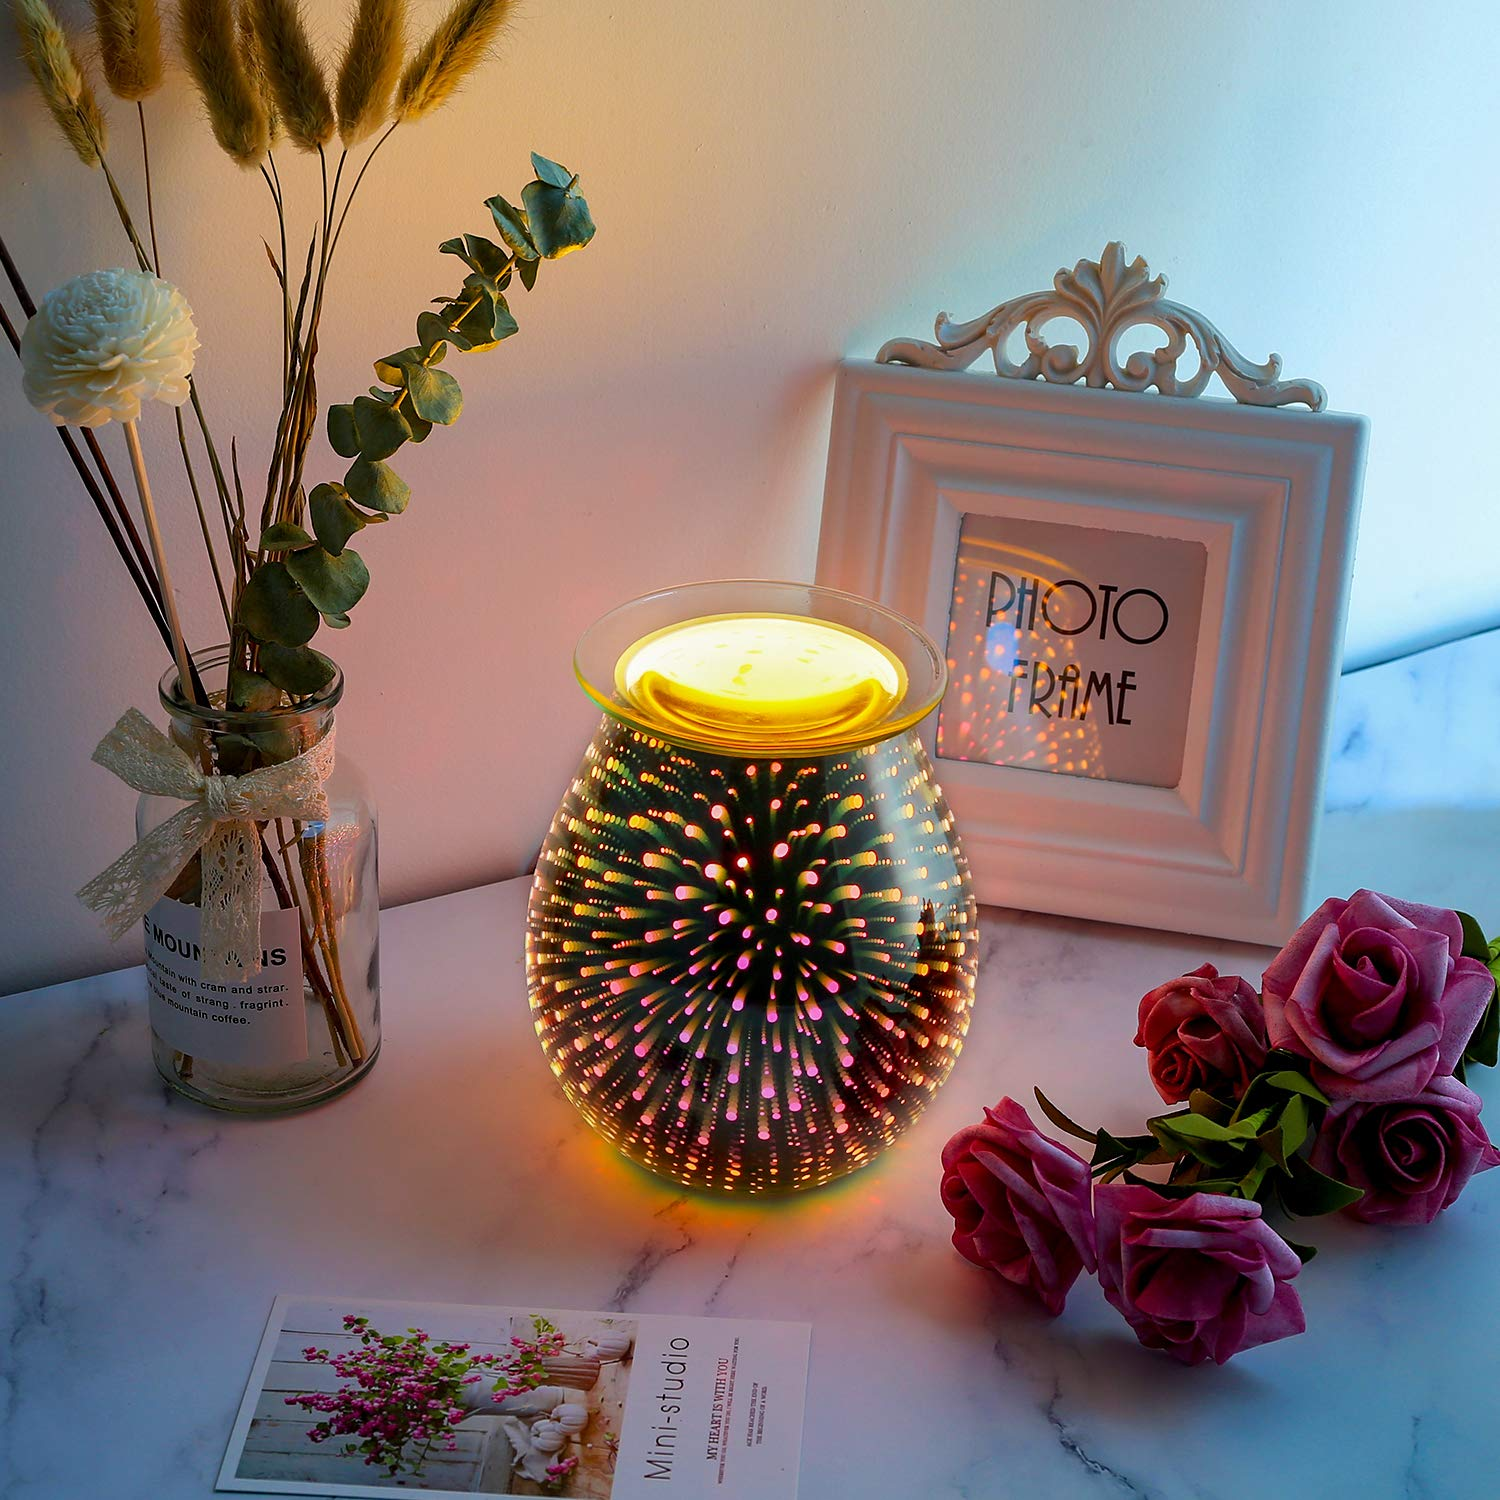 Electric Oil Warmer COOSA 3D Effect Starburst Fireworks Glass Wax Tart Burner Fragrance Candle Warmer Incense Oil Night Light Aroma Decorative Lamp for Gifts, Decor for Home Office by COOSA (Image #3)